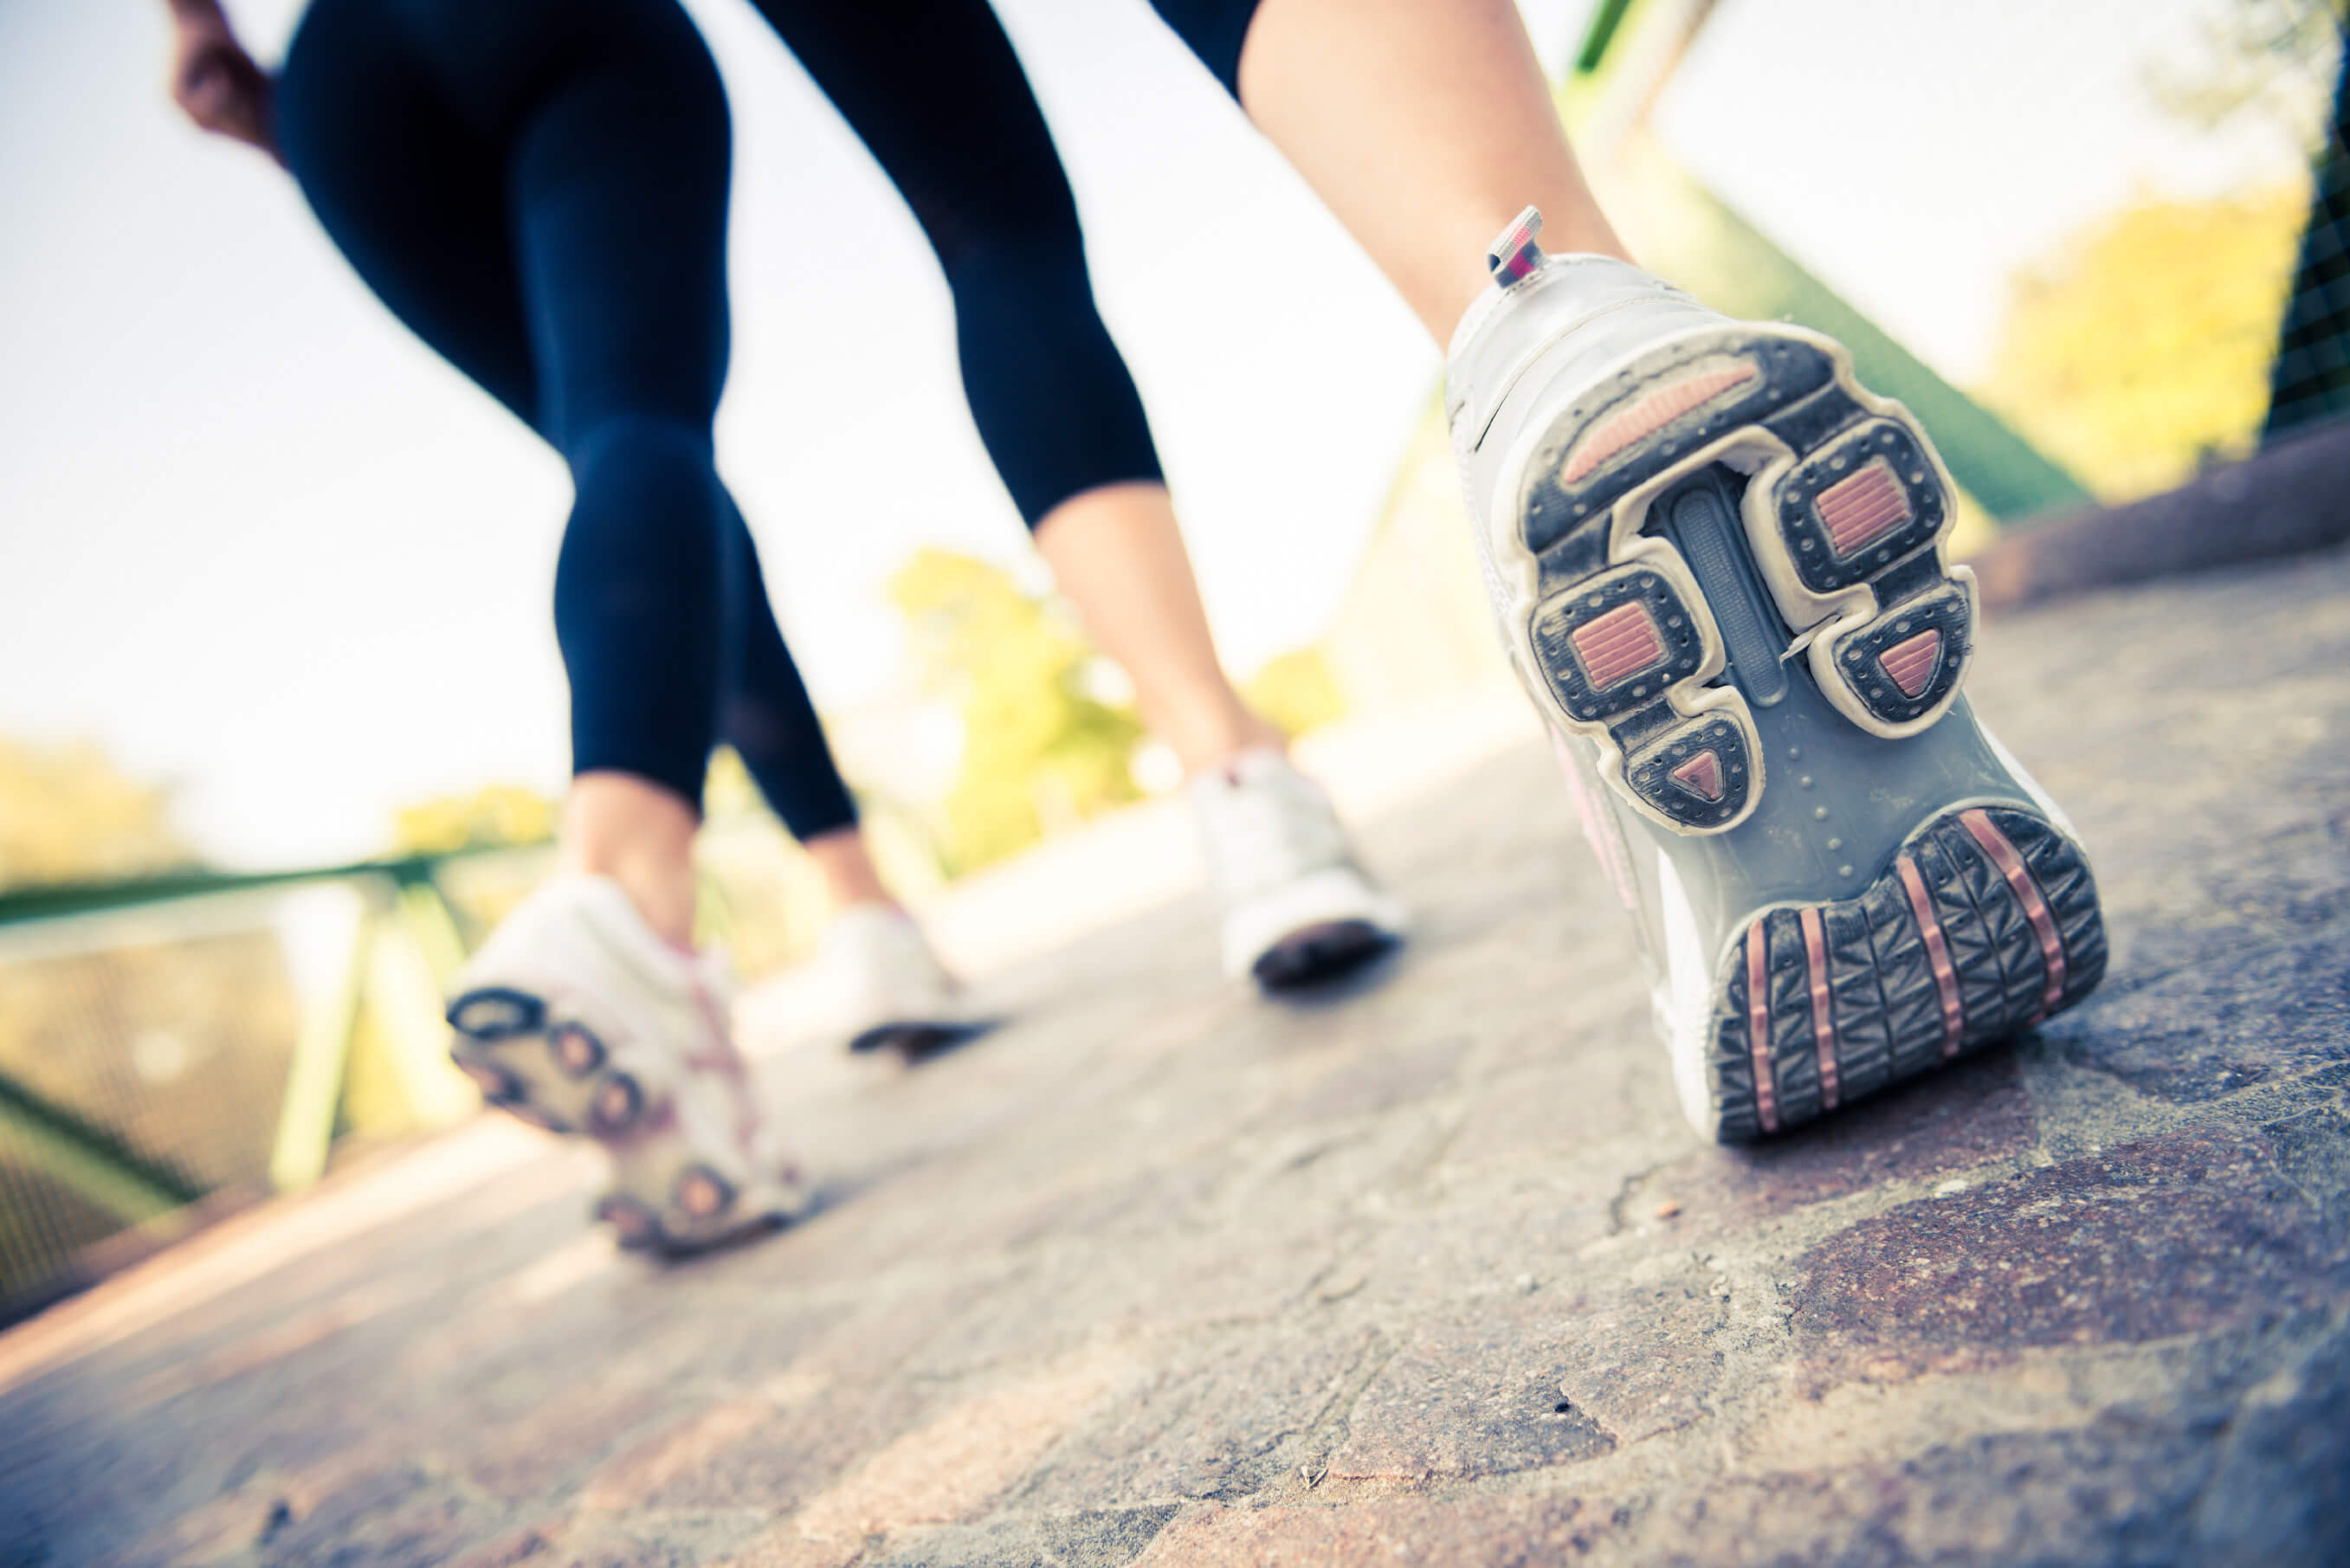 Why you should walk 10,000 steps a day